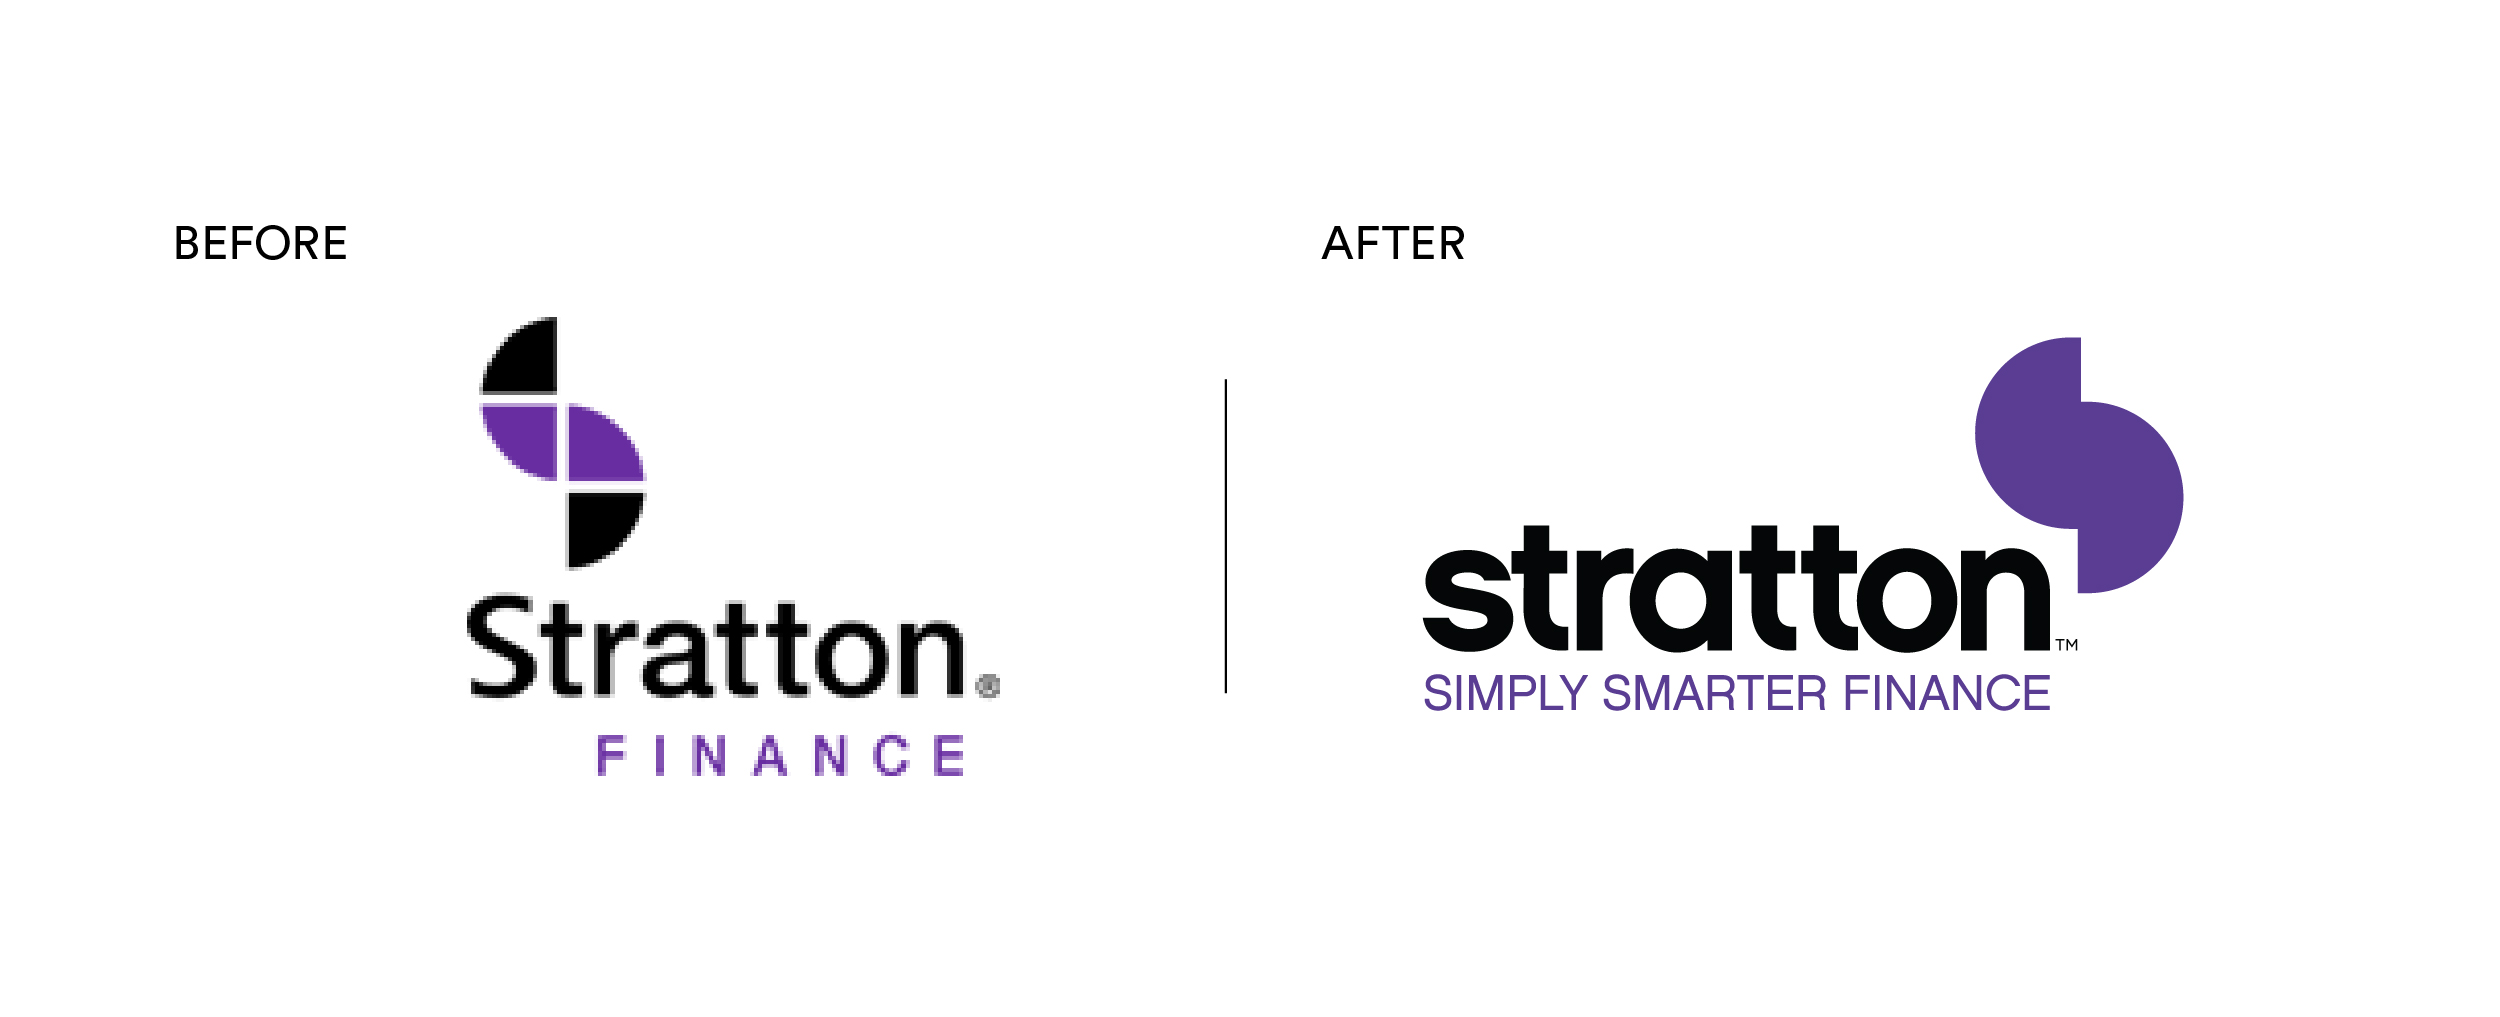 Stratton Car finance brand mark before and after brand refresh